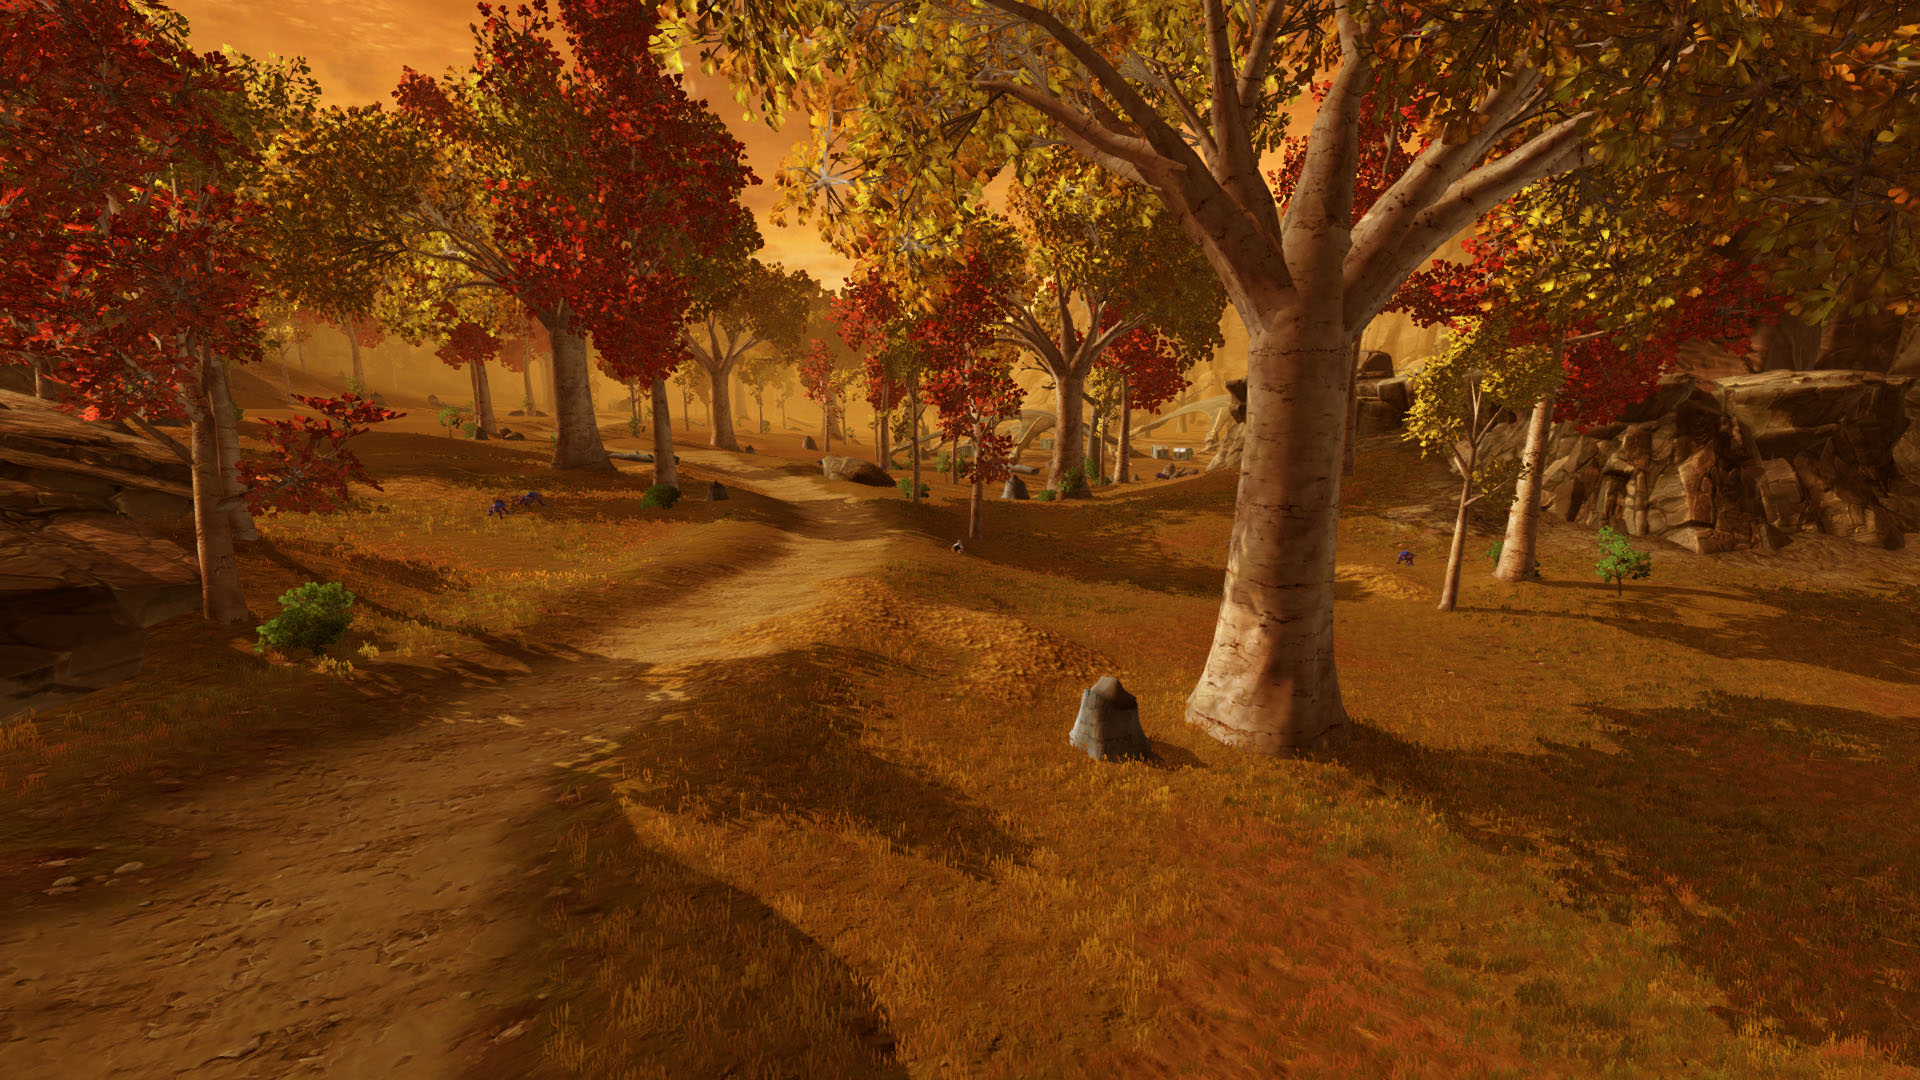 SWTOR screenshot taken in the northeastern part of the planet Voss. A road goes through the yellow-orange landscape with autumn trees and an orange sky